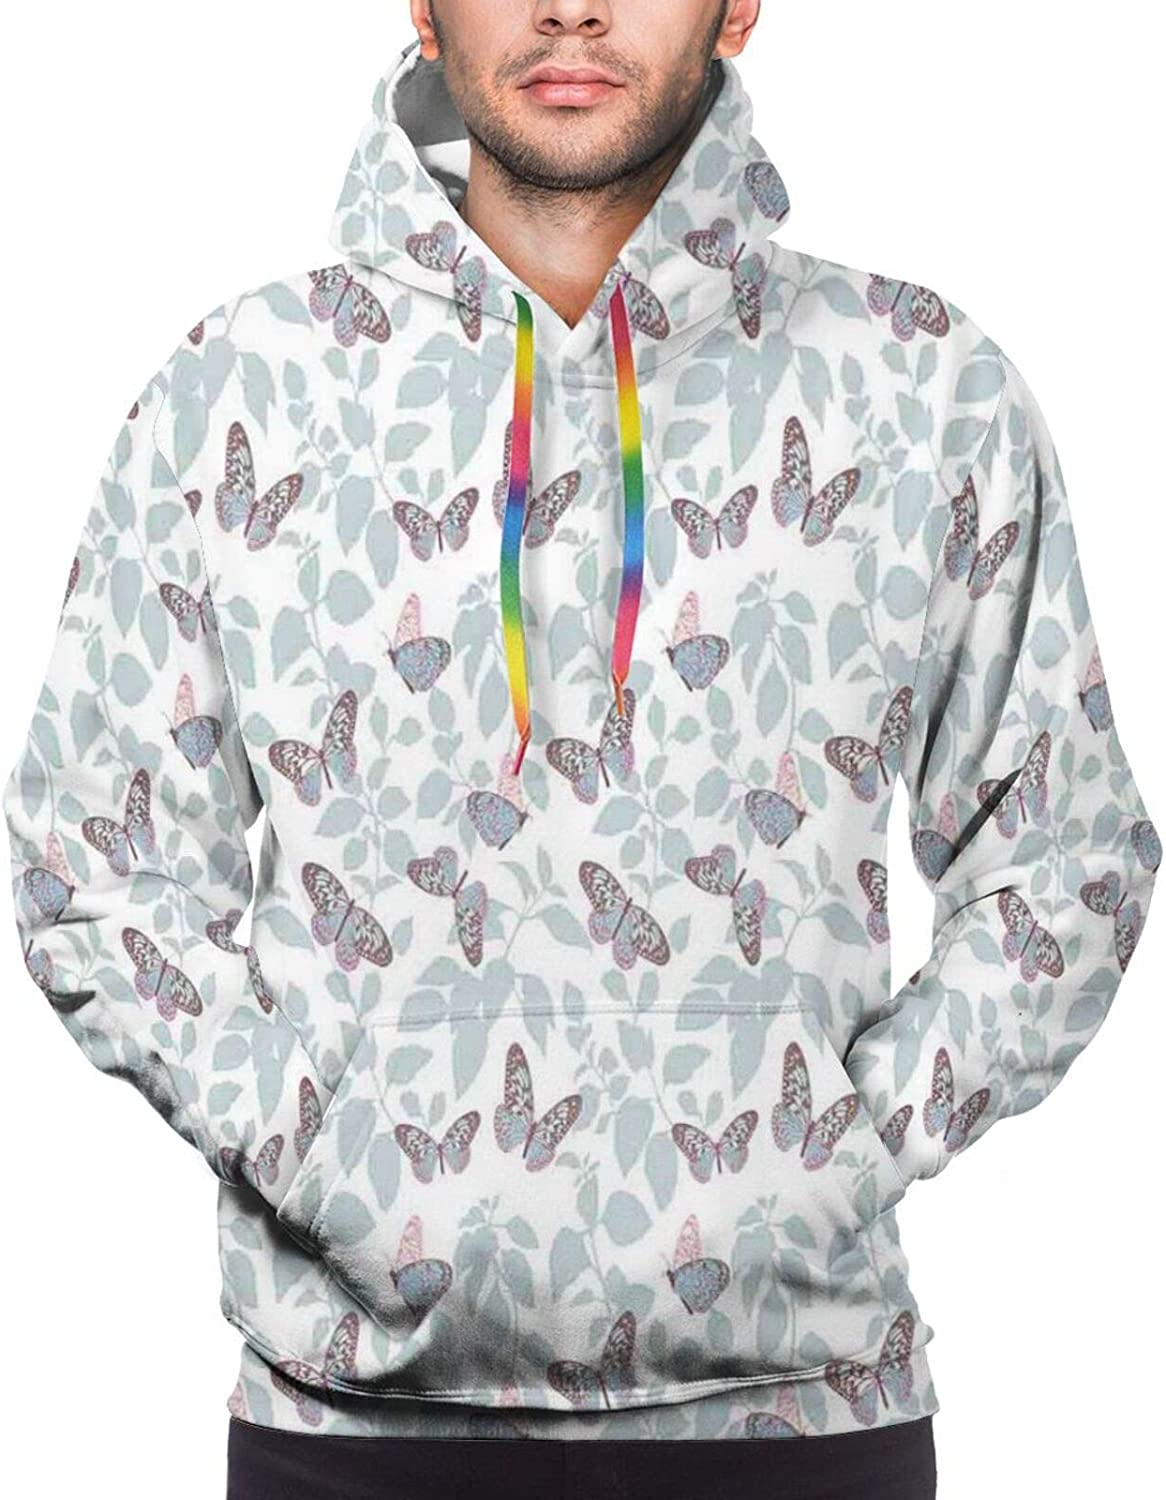 Men's Hoodies Sweatshirts,Beautiful Flying Wild Nature Insects Pattern On Silhouette Leaves Background